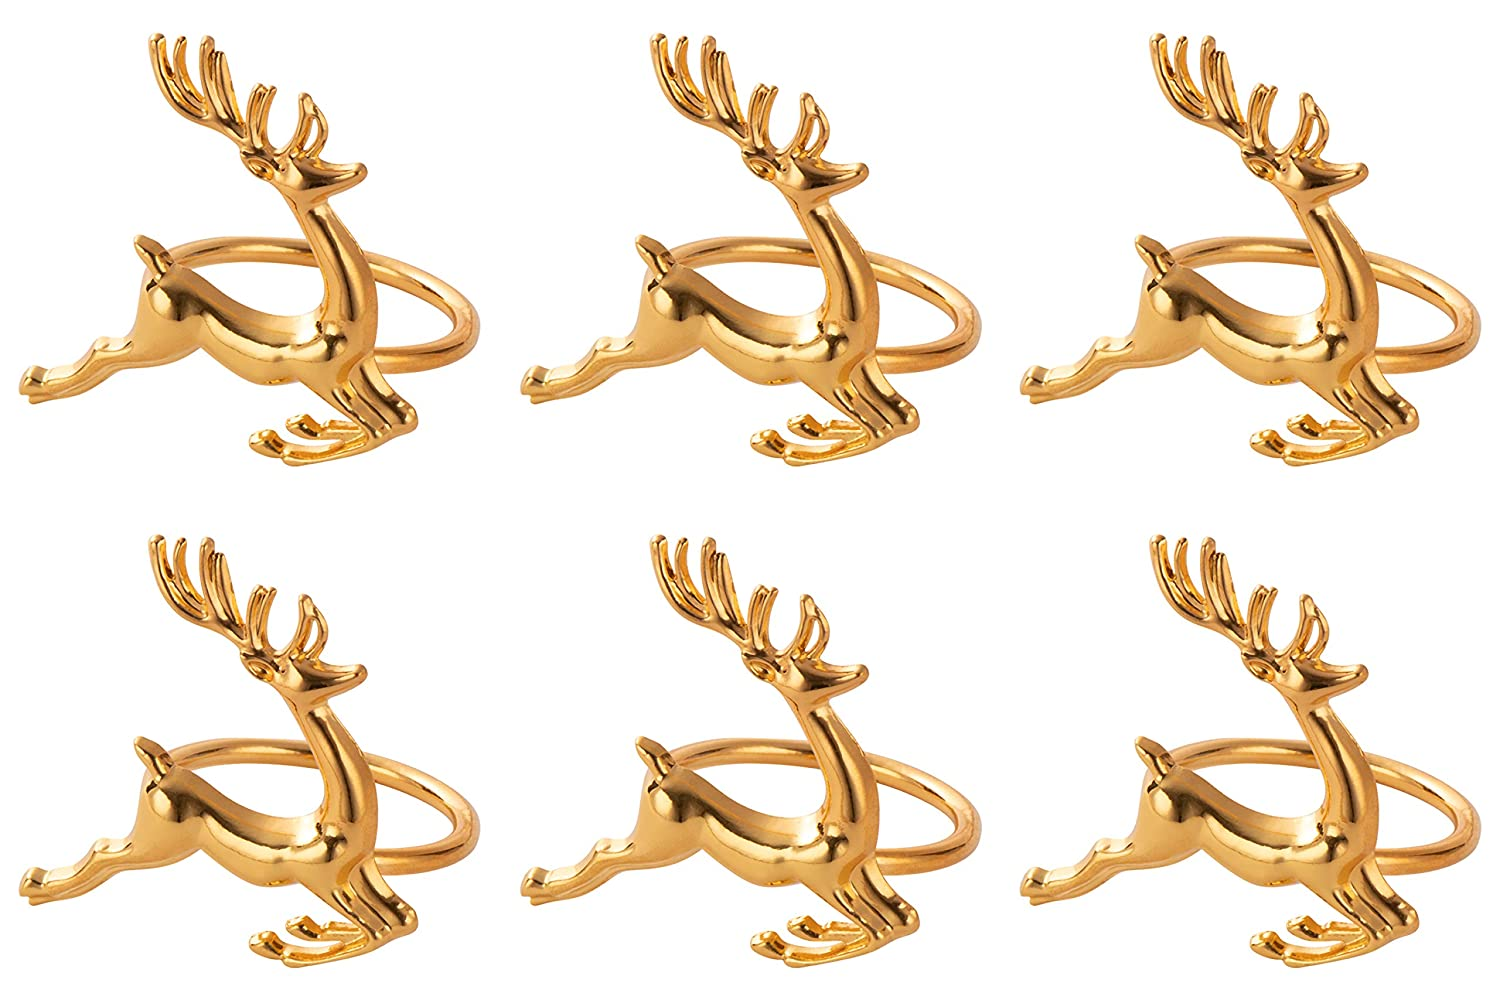 Juvale Christmas Napkin Rings 6-Pack Gold Reindeer Festive Design Napkin Holder Accessories Lunch and Dinner Table Decoration Holiday Themed Party Supplies